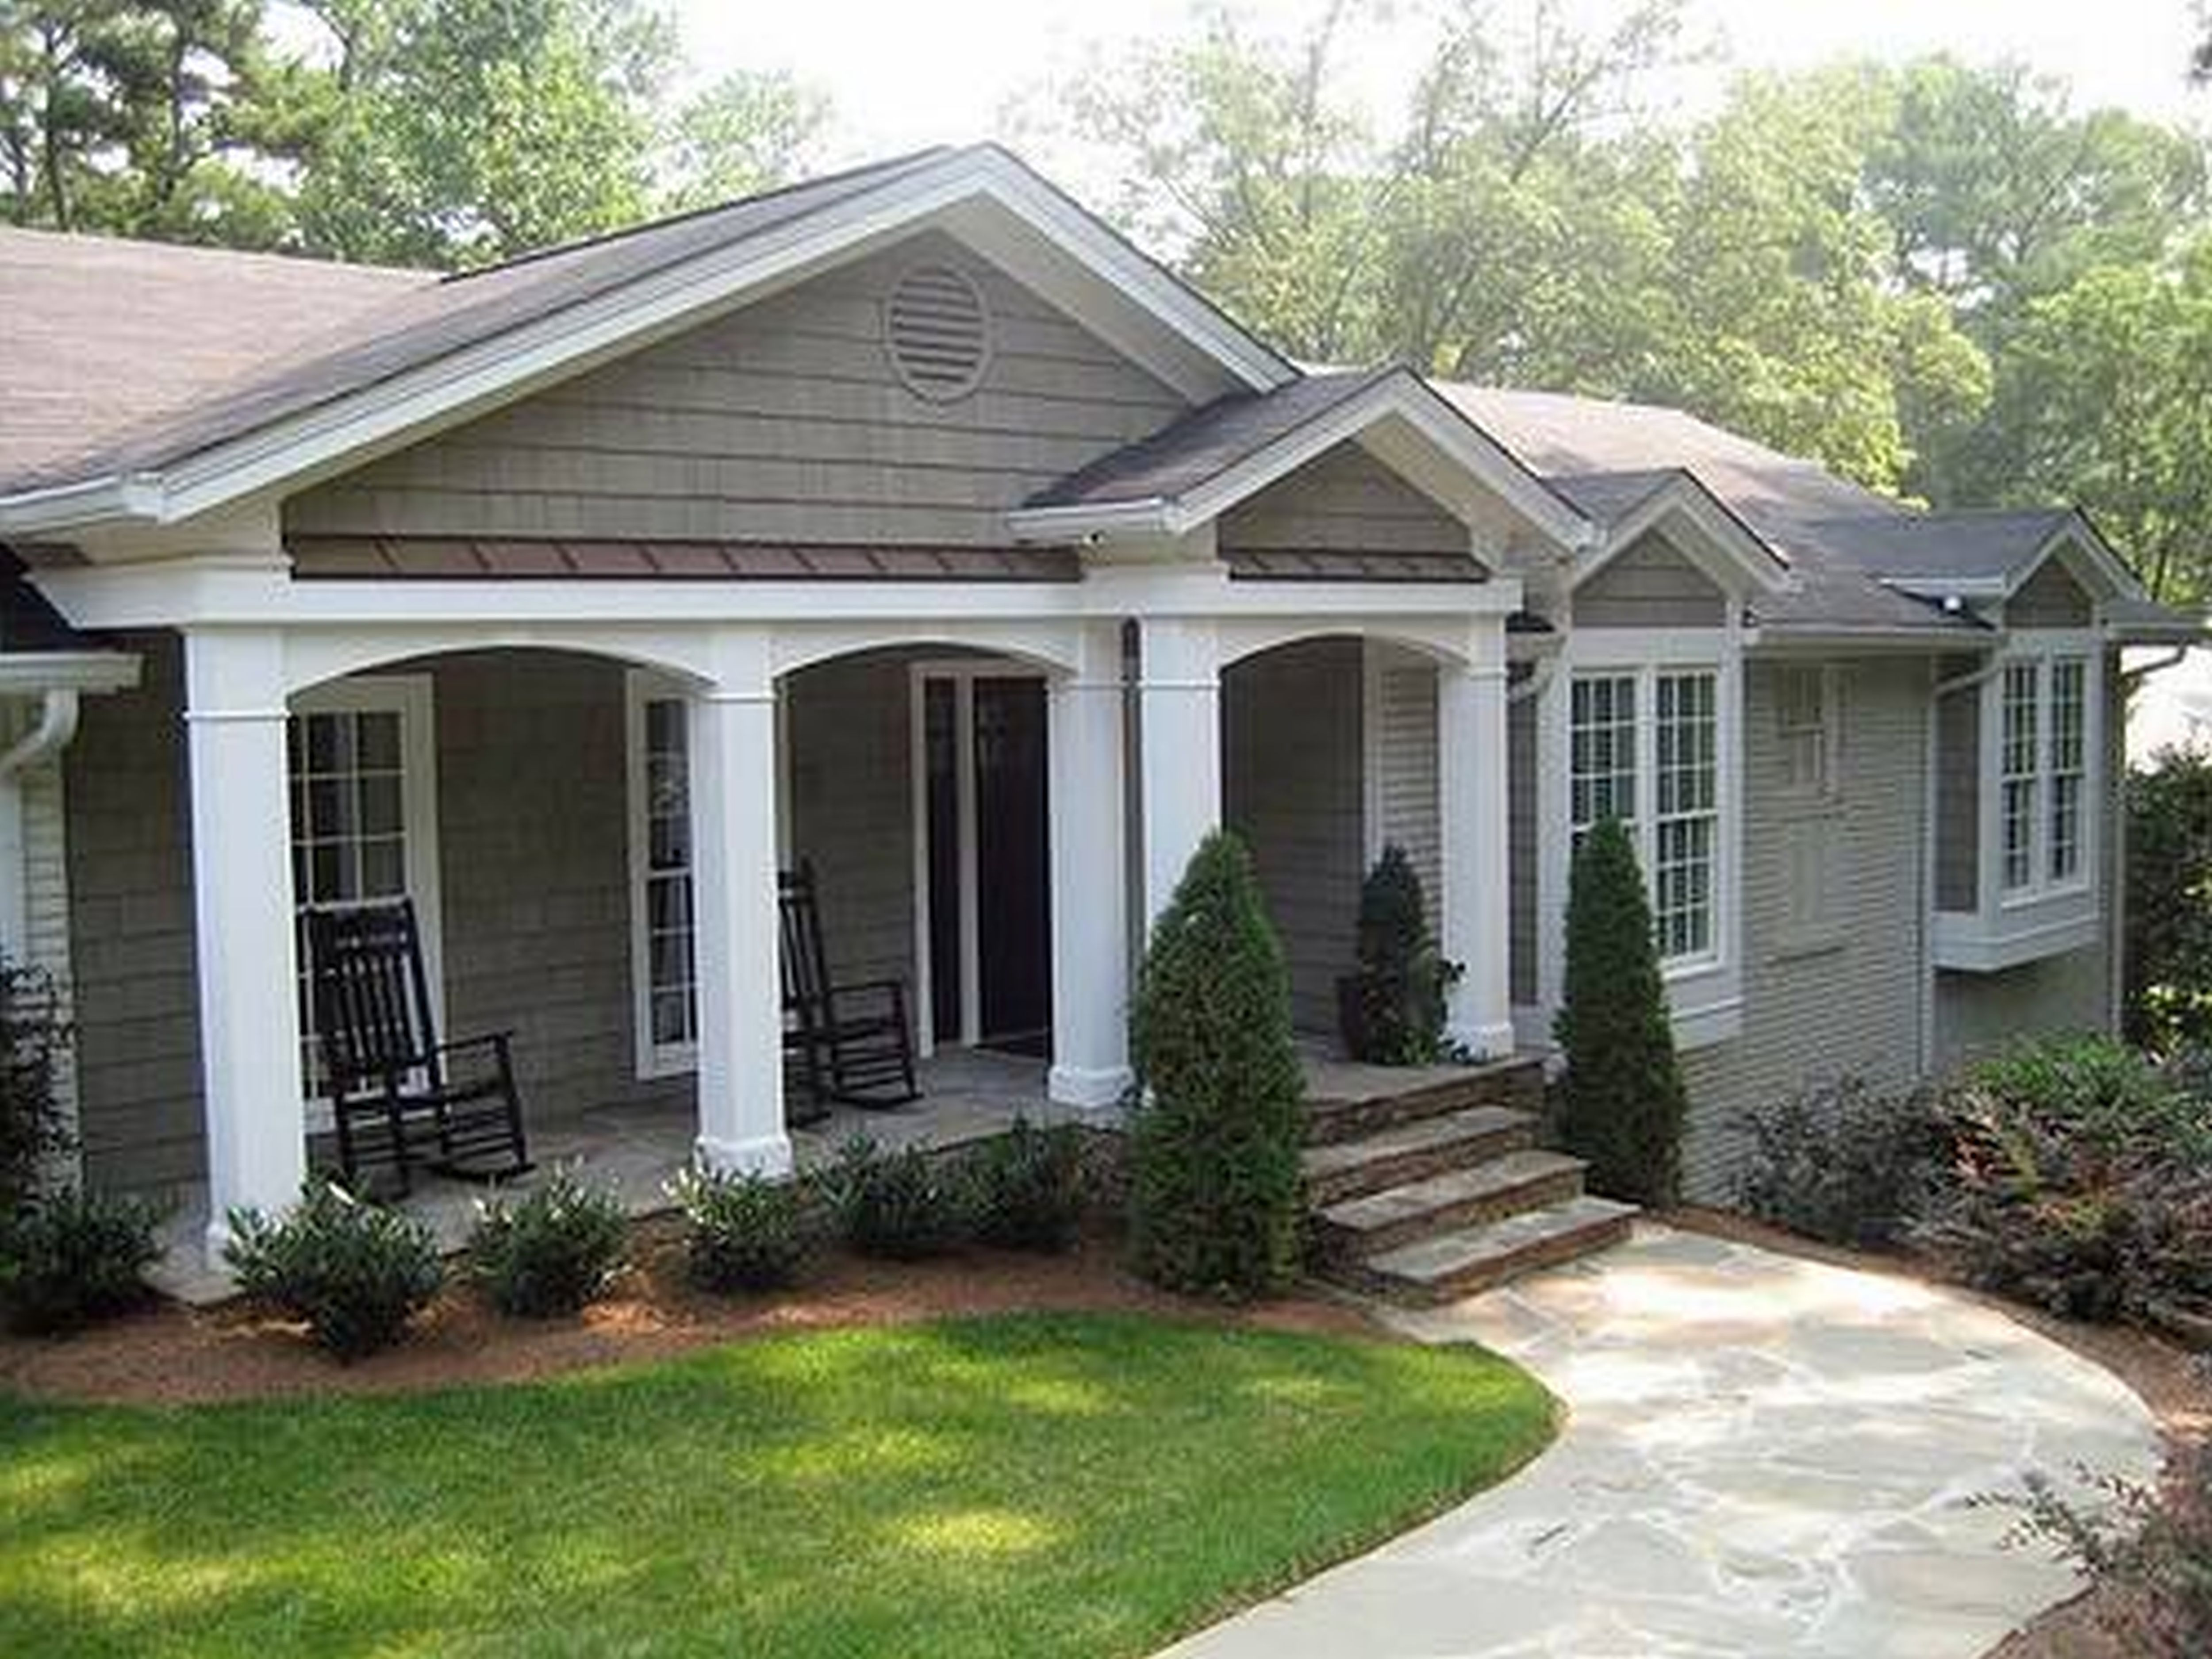 Plans For Condo Style Home Google Search Ranch Style Homes Porch Design Porch Ideas For Ranch Style Homes